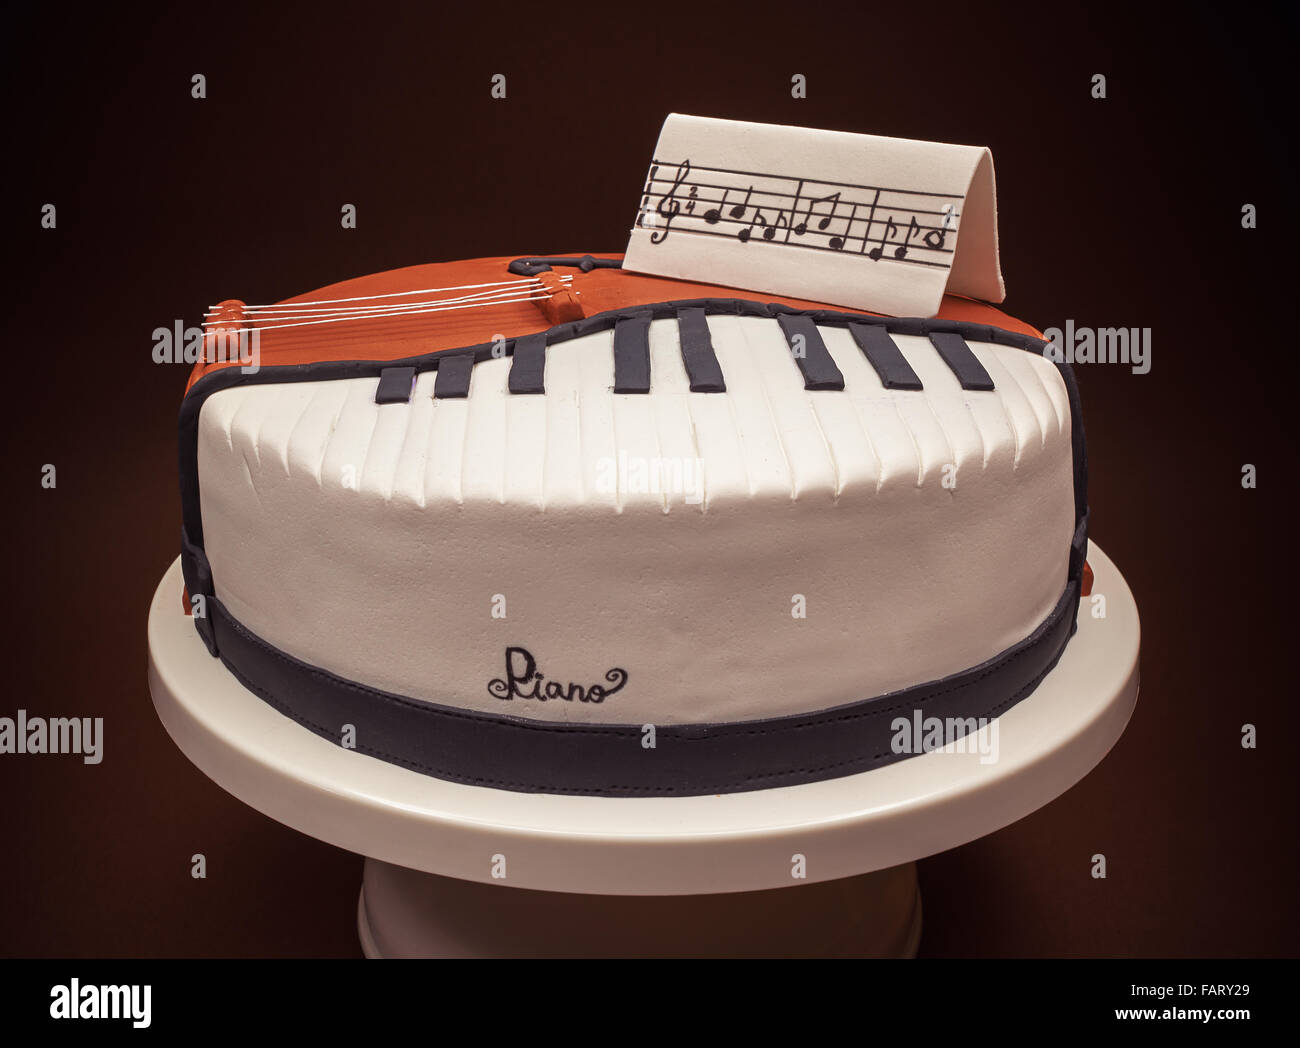 Birthday cake decorated with fondant, rounded, symbolically presenting piano and cello instruments. - Stock Image